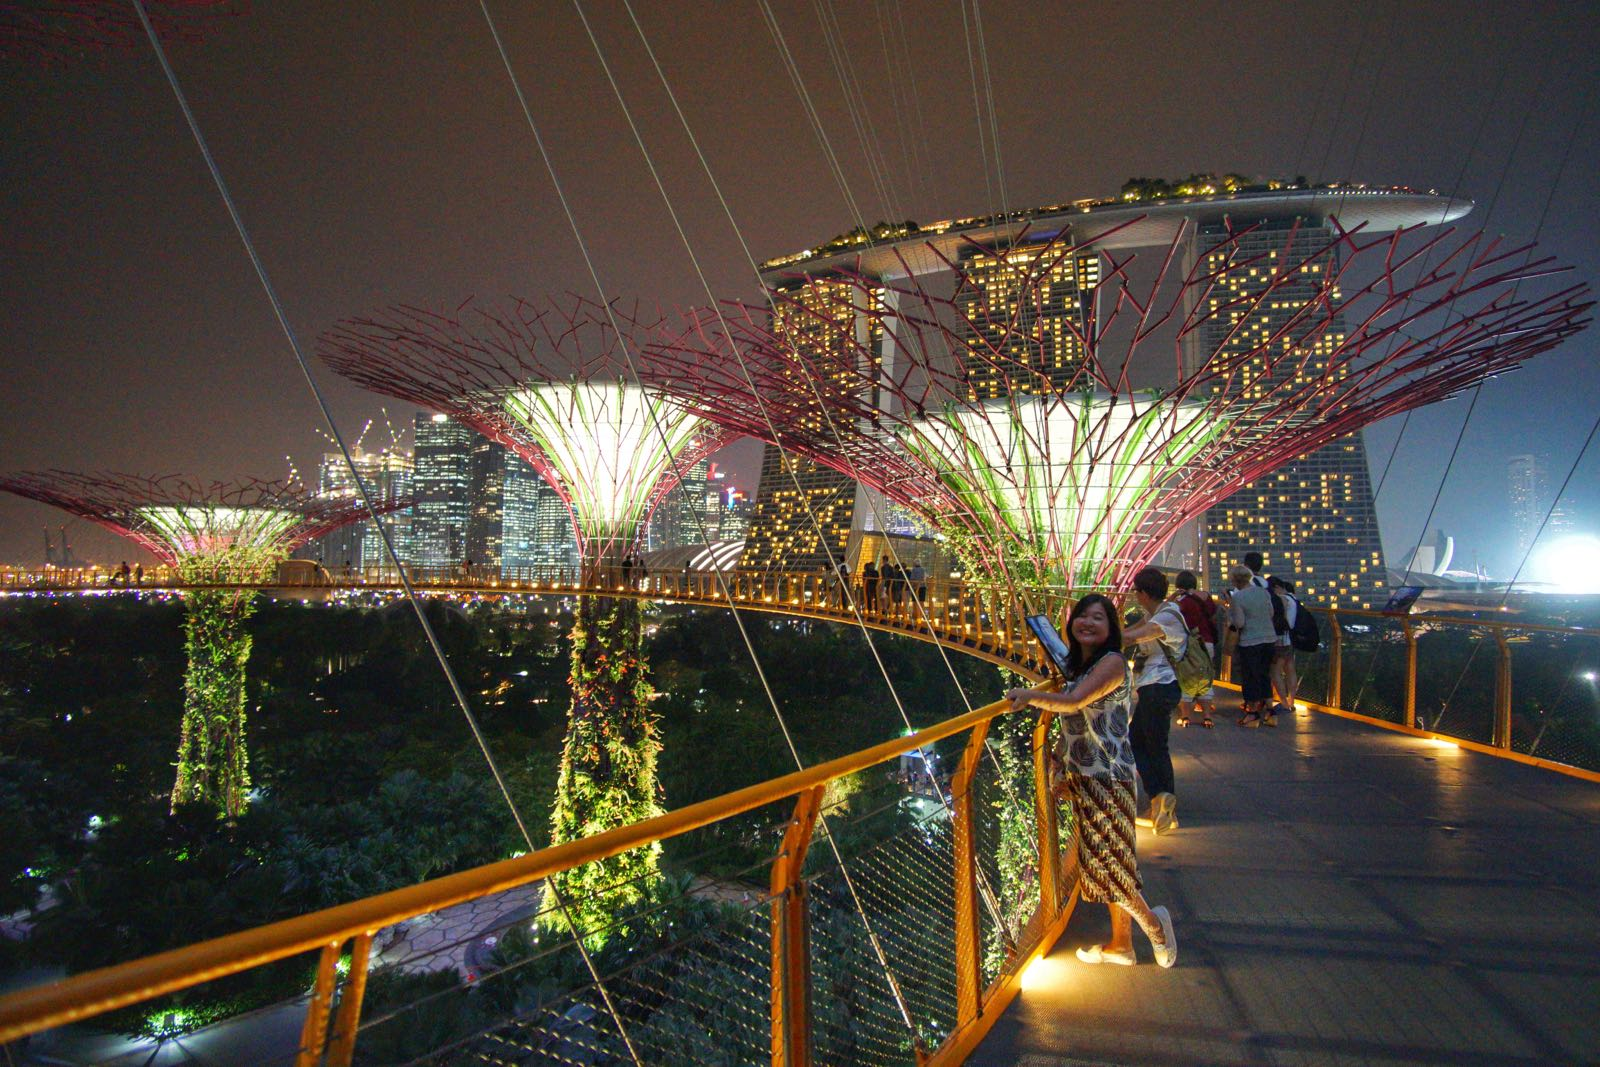 Di Atas OCBC Skyway Gardens By The Bay